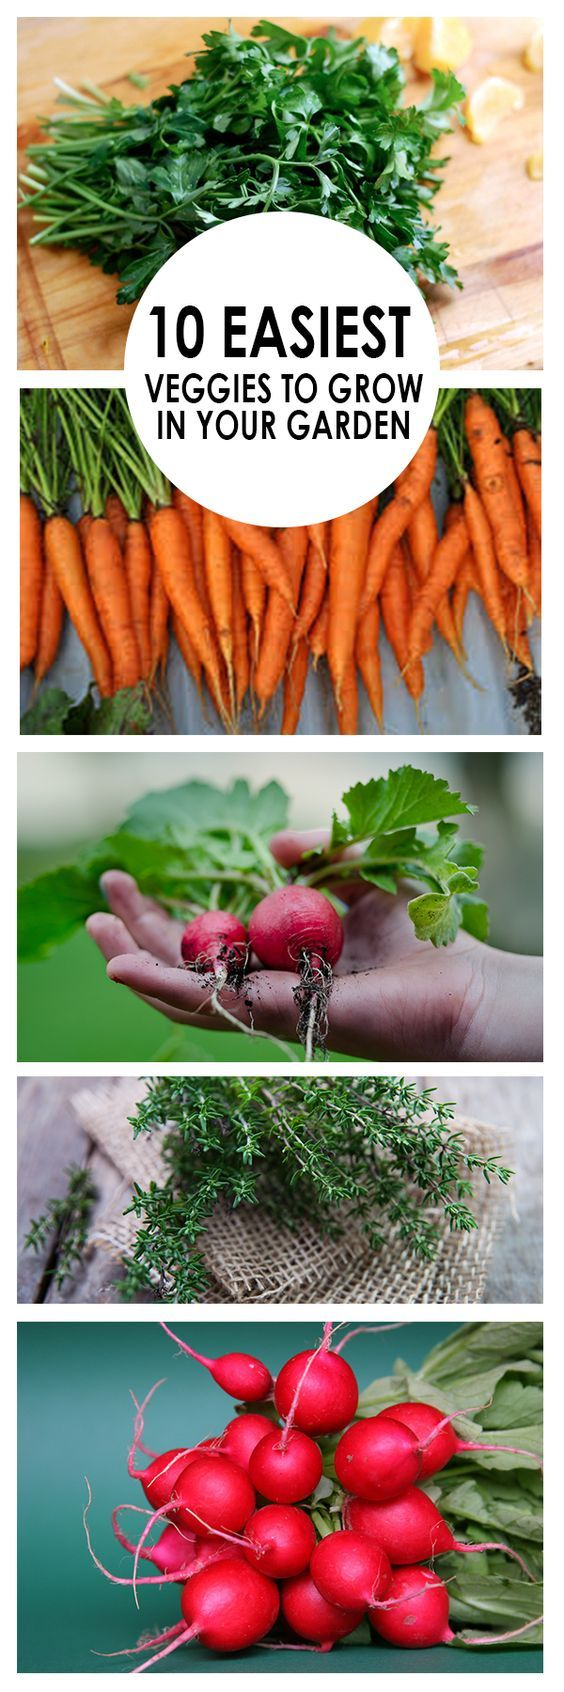 10 easiest veggies to grow in your garden gardening for Indoor vegetable gardening tips